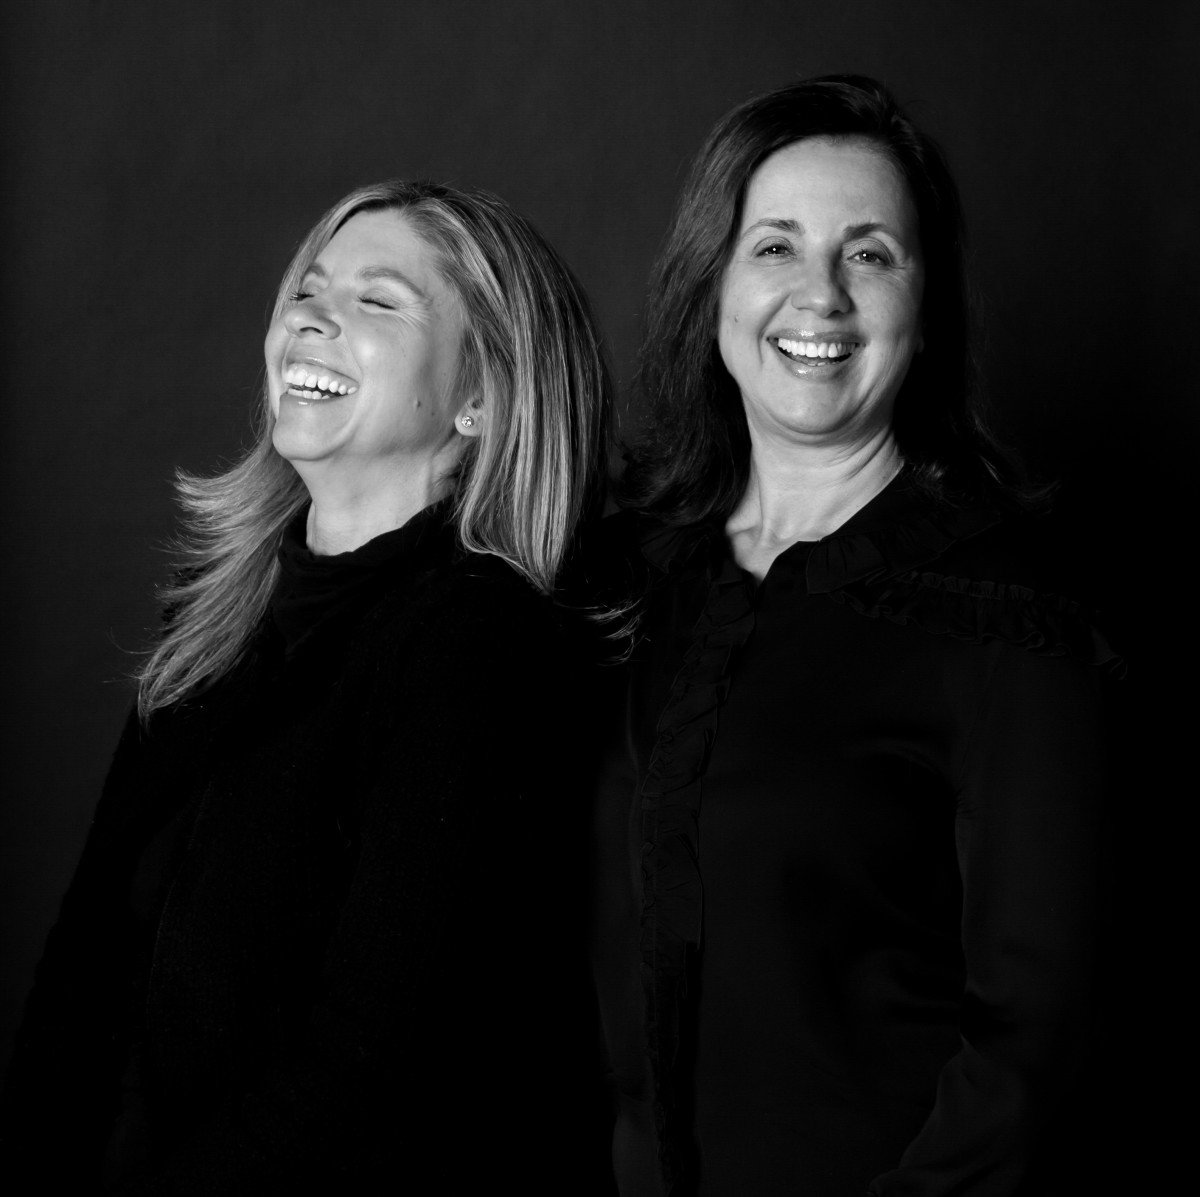 Co-Founder and President Cheryl Kaplan and Co-Founder and Chief Merchant Maria Gangemi. Photo: Courtesy of M.Gemi